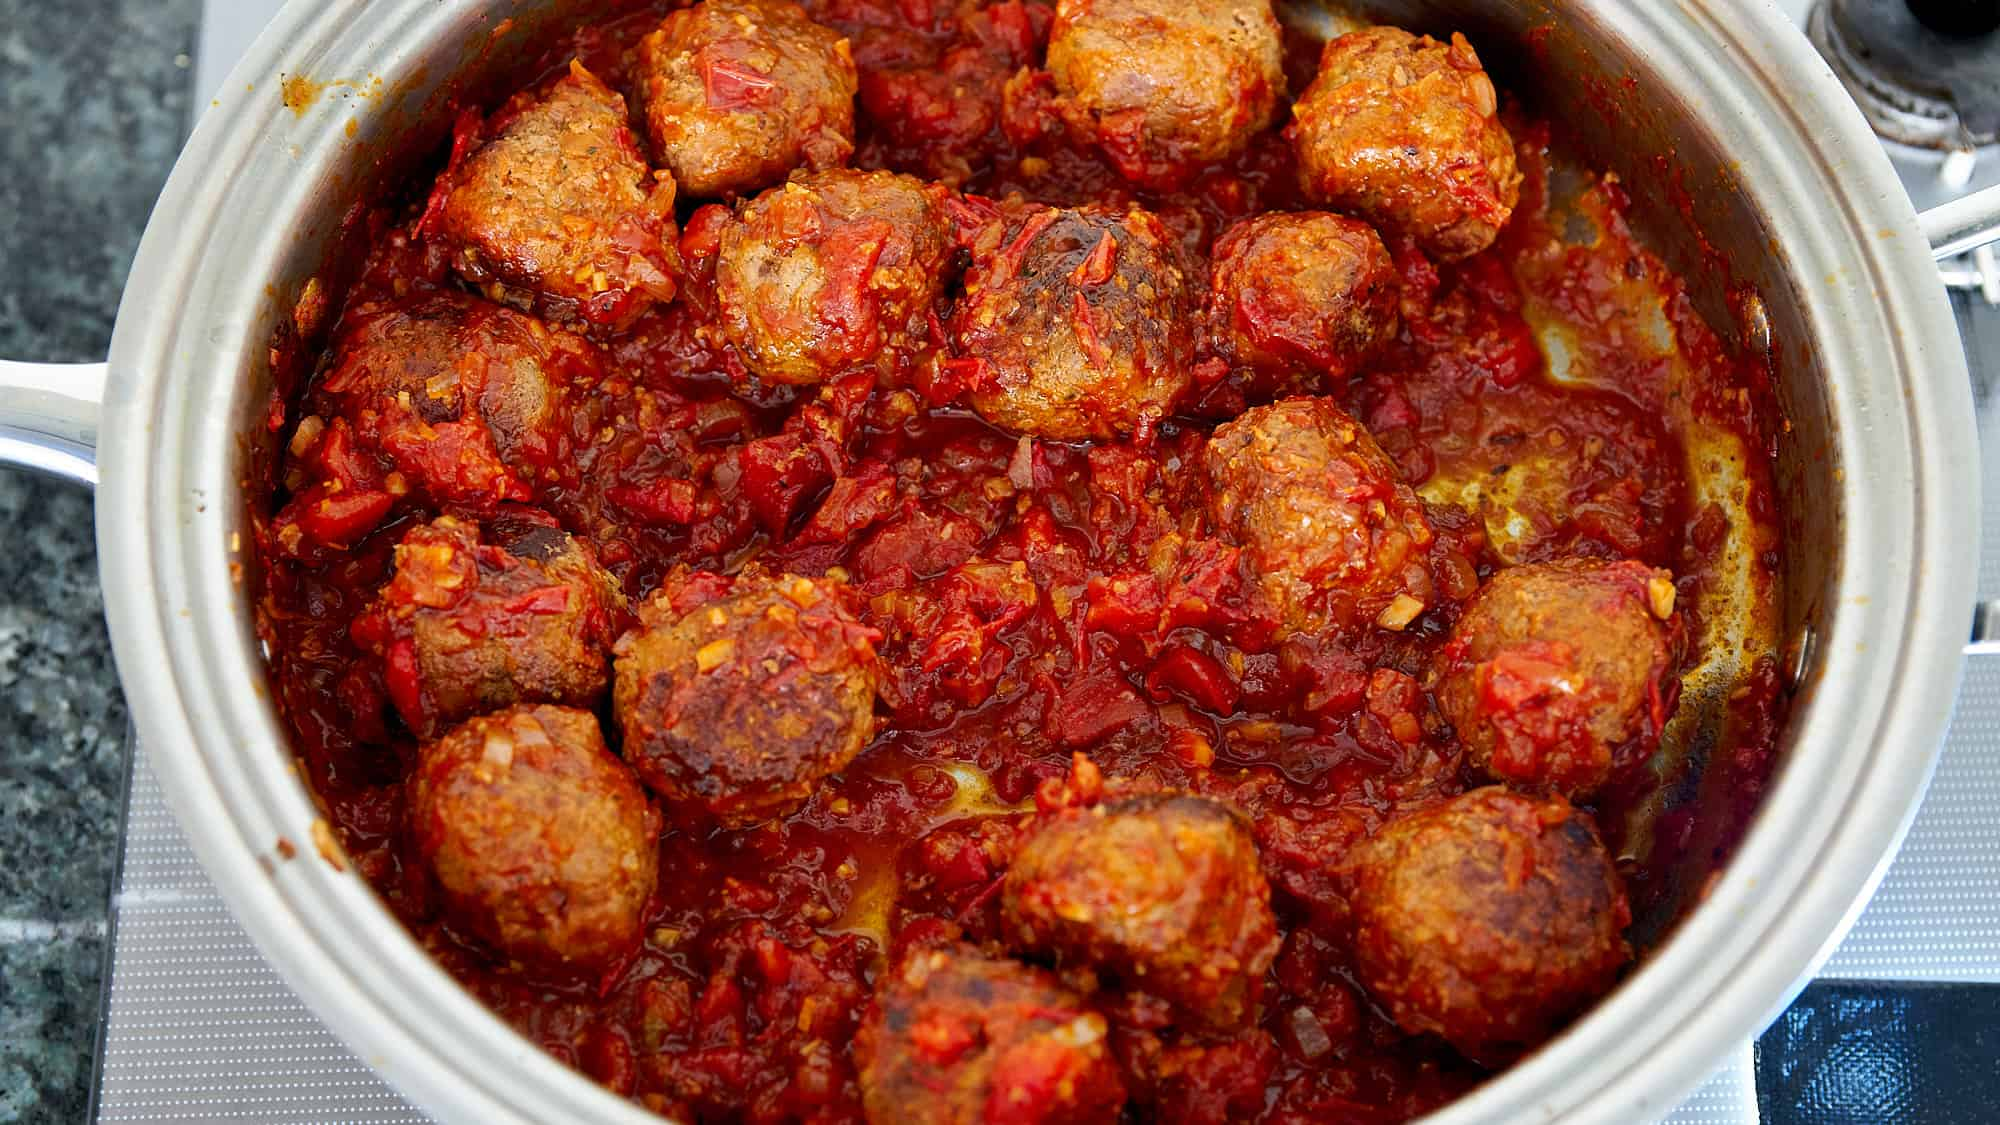 Simmer the meatballs together with the sauce until the sauce is thick and flavorful.